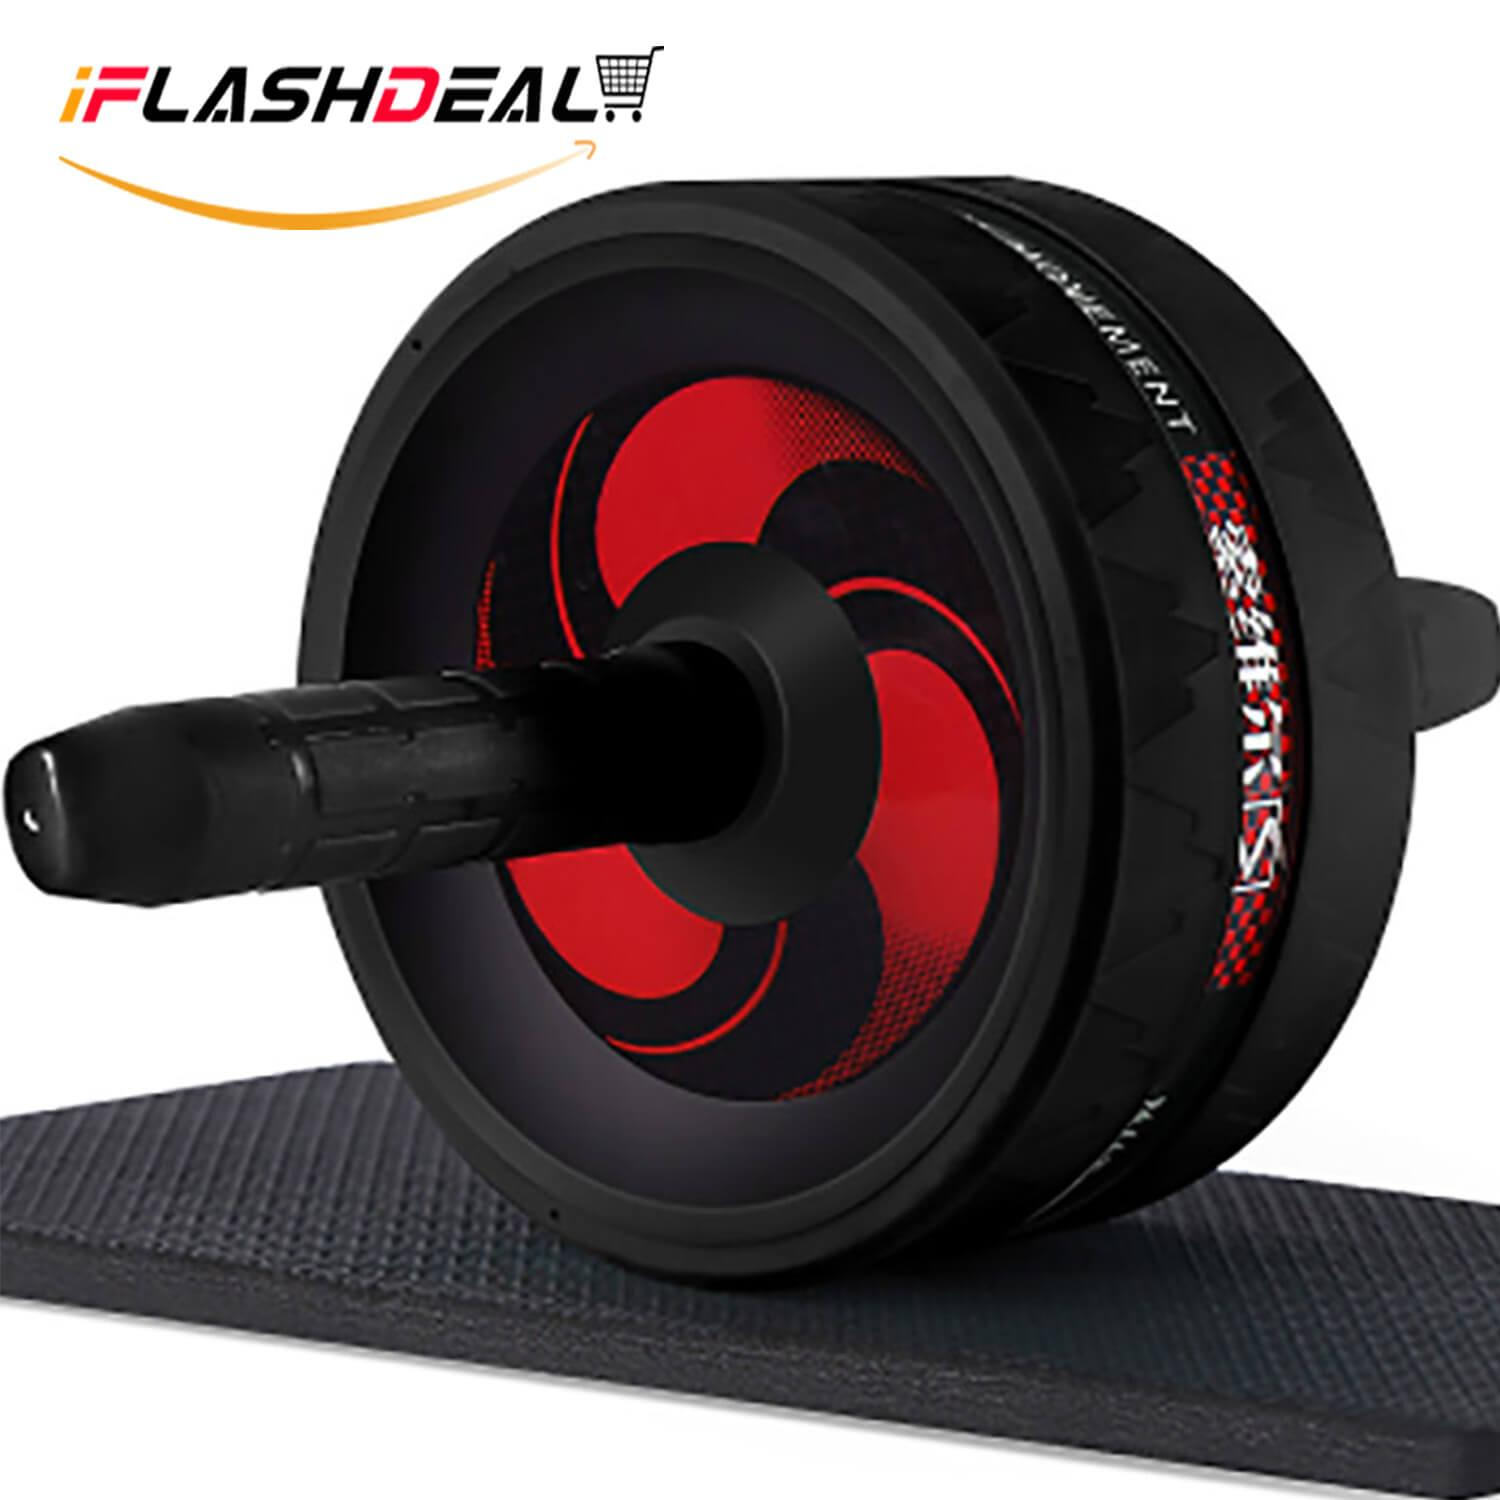 iFlashDeal AB Wheel Exercise Fitness Wheel Abs Roller Workout System With Free Knee Mat Core Abdominal